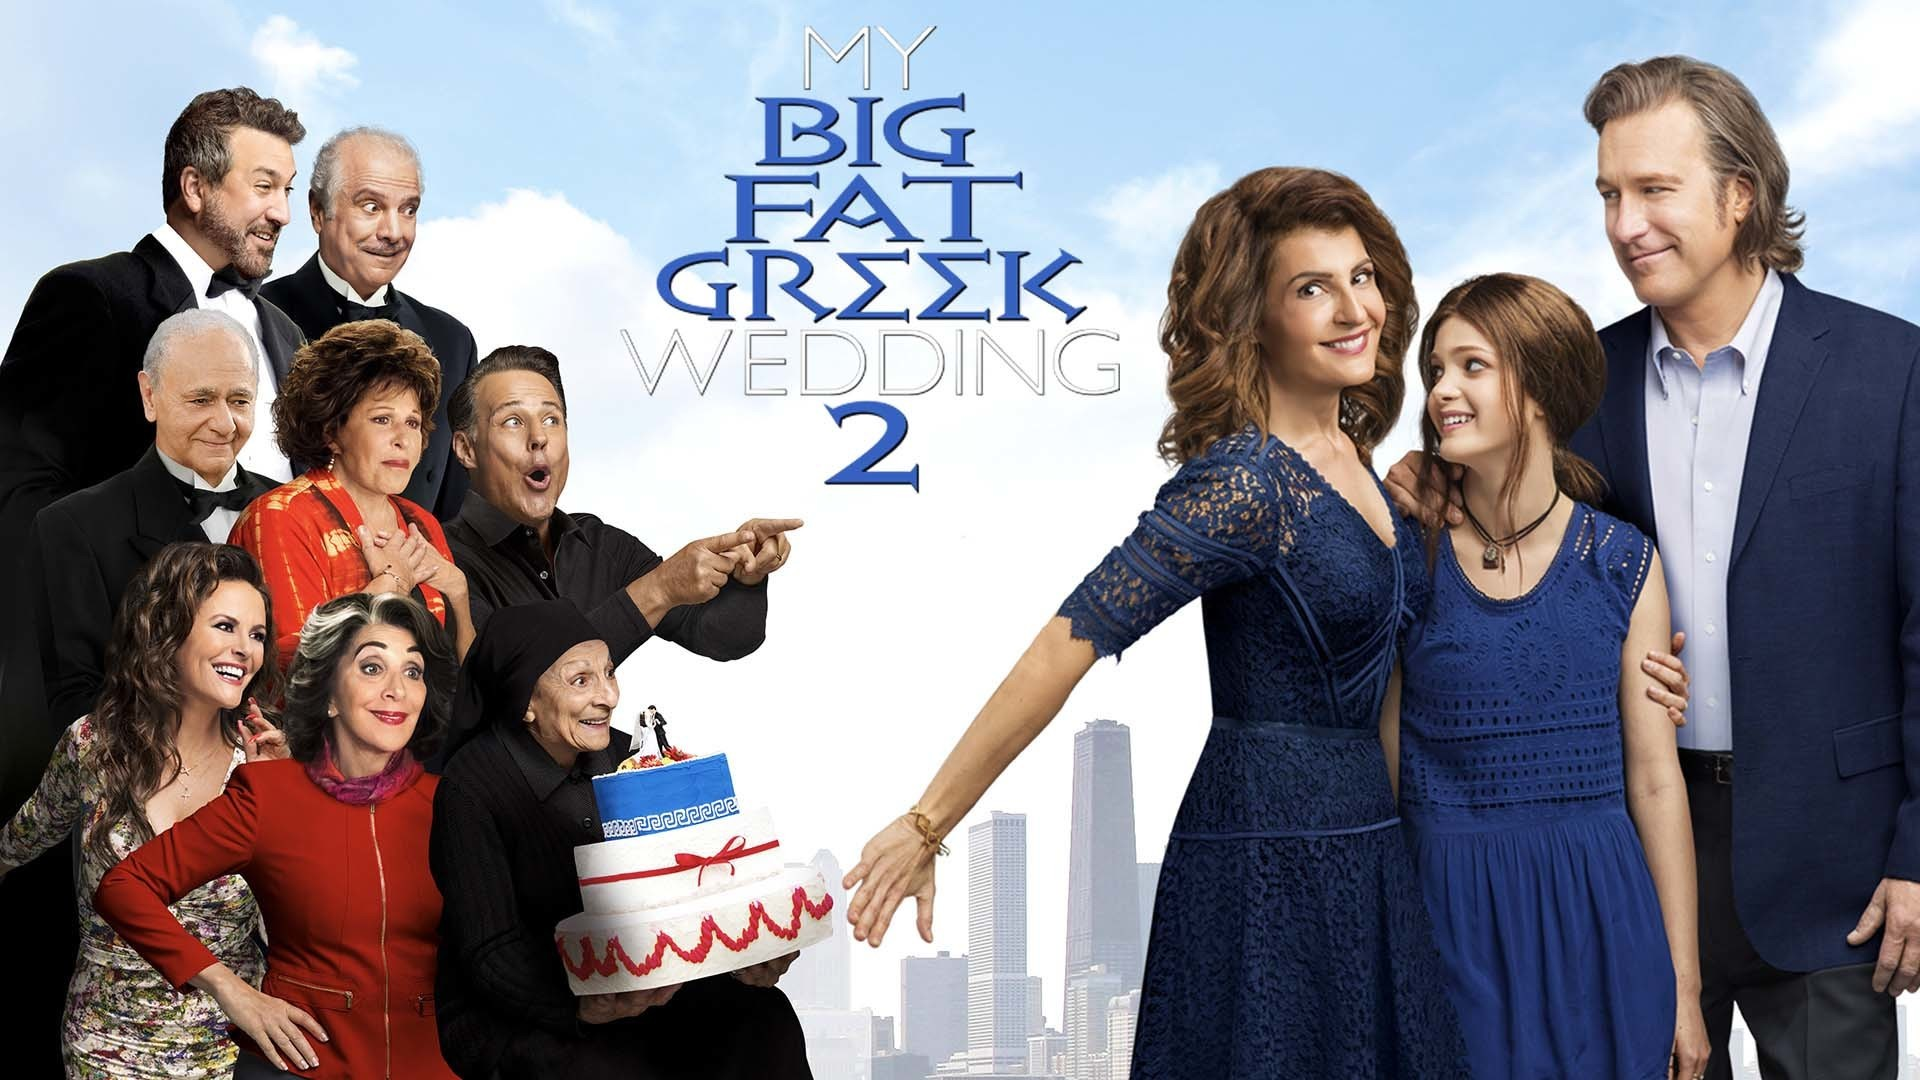 My Big Fat Greek Wedding 2.My Big Fat Greek Wedding 2 Burg Kino Wien Vienna